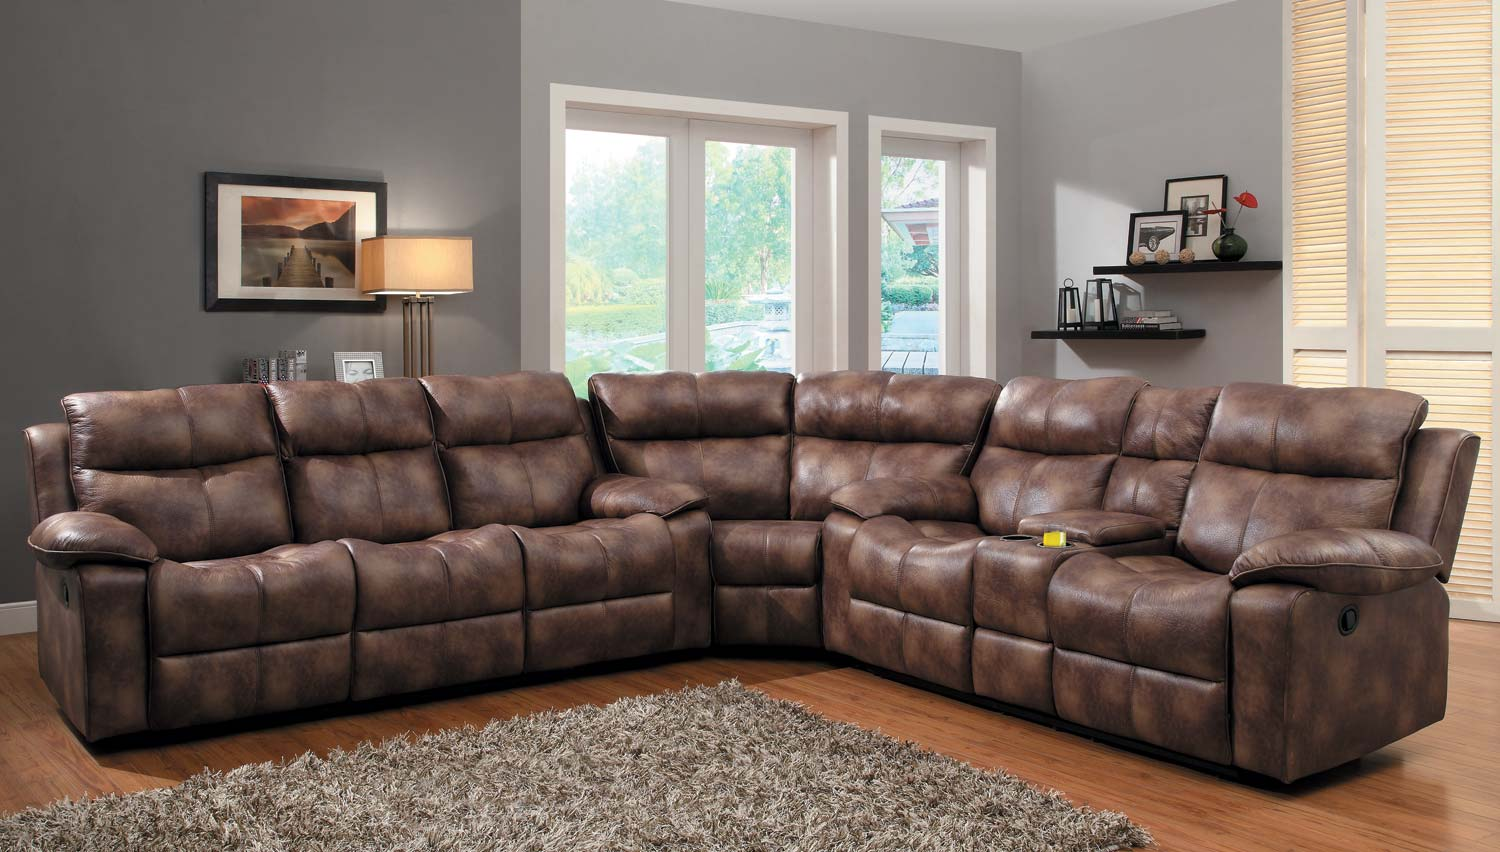 Chesterfield Leather Sectional further 705l further Catnapper Impulse Reclining Loveseat In Caf And Espresso 1242 3382 213329 213429 moreover New Tv Stands further 1598687. on reclining furniture